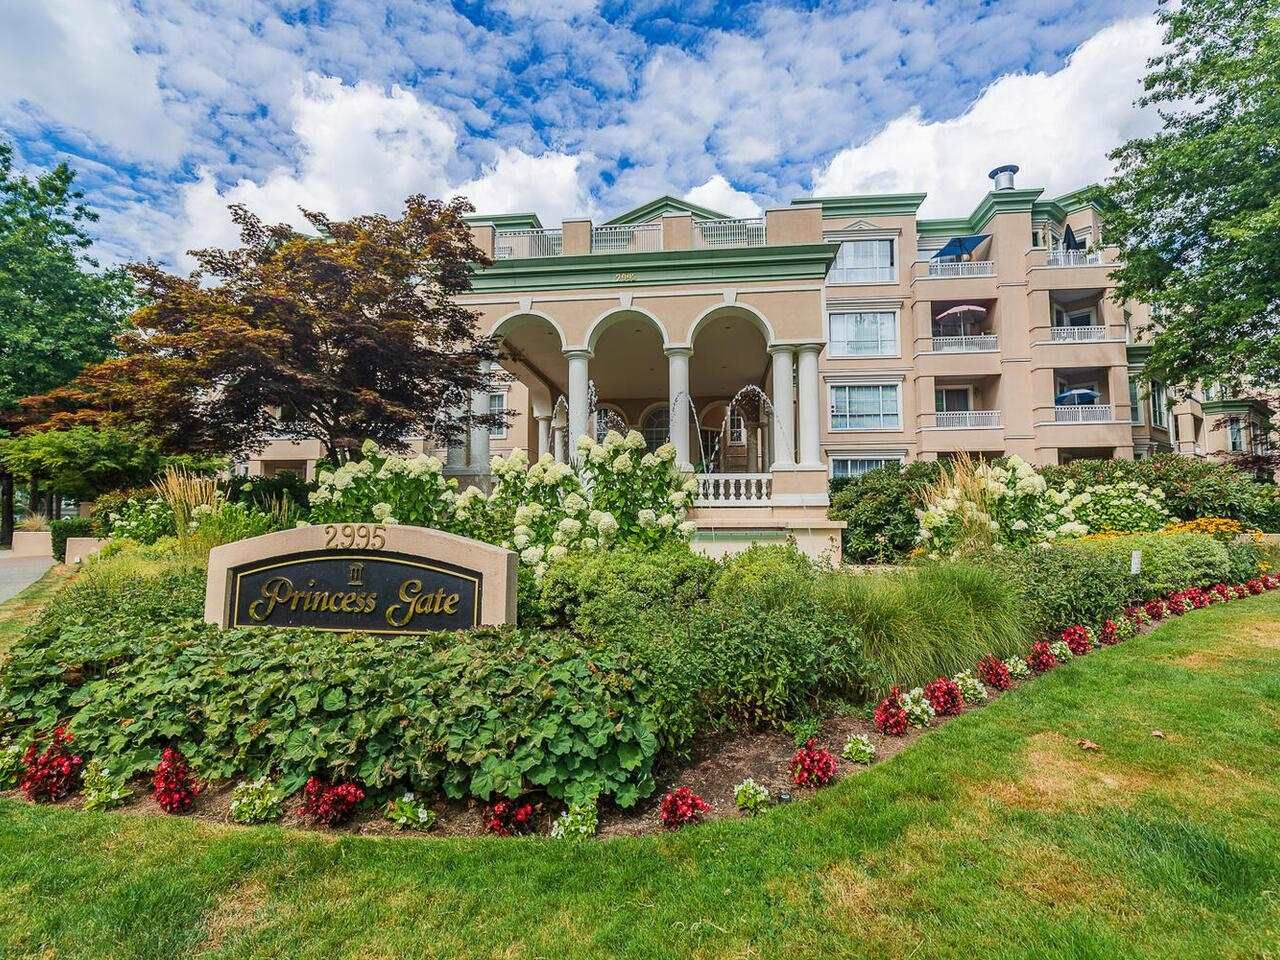 """Main Photo: 406 2995 PRINCESS Crescent in Coquitlam: Canyon Springs Condo for sale in """"Princess Gate"""" : MLS®# R2608568"""